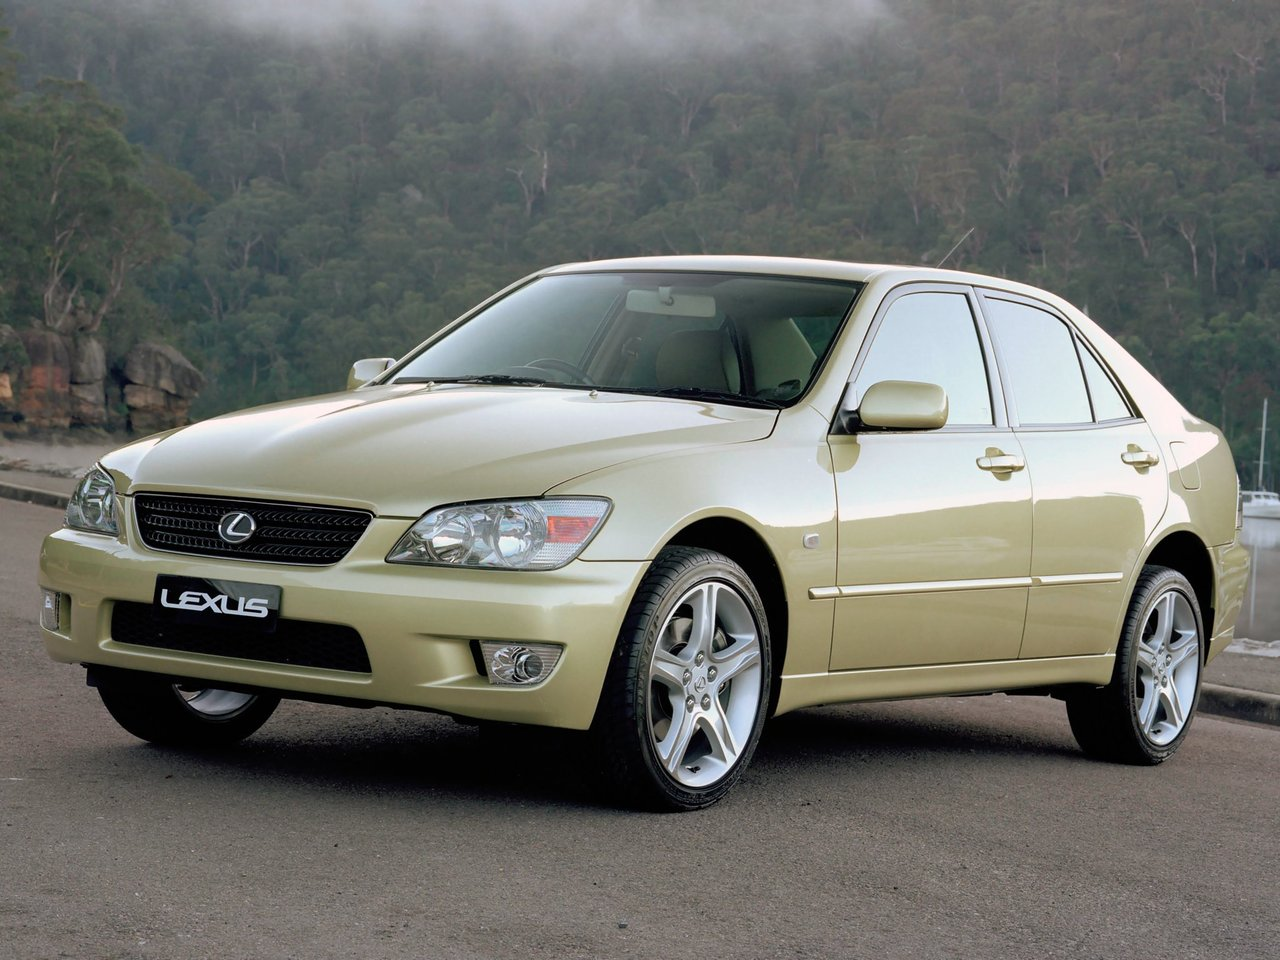 Lexus IS I